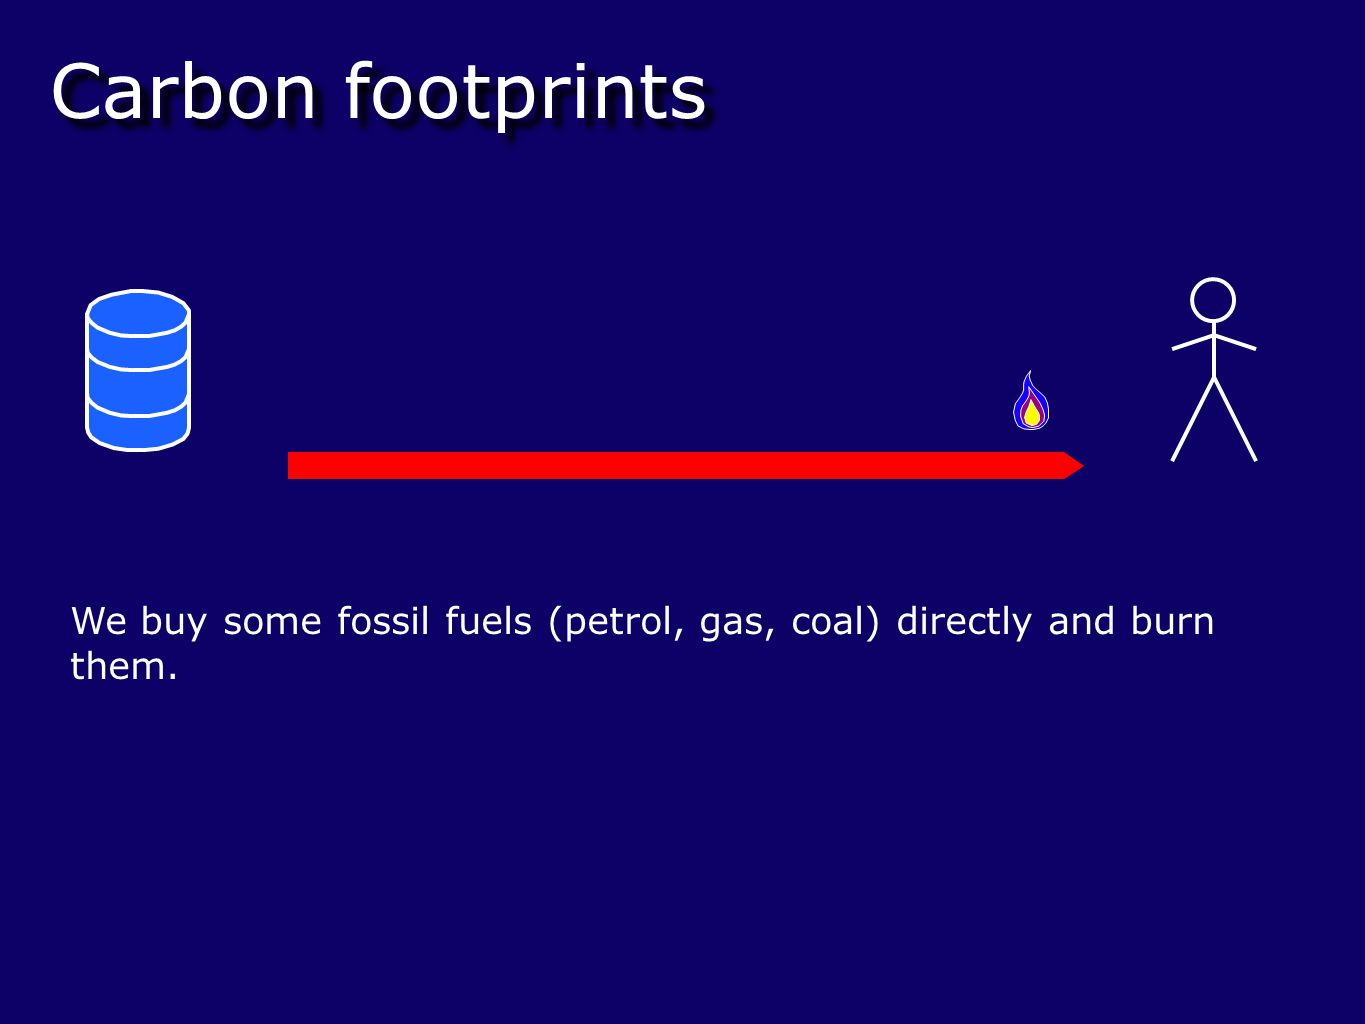 Let's look at the indirect emissions of the two individuals A and B.